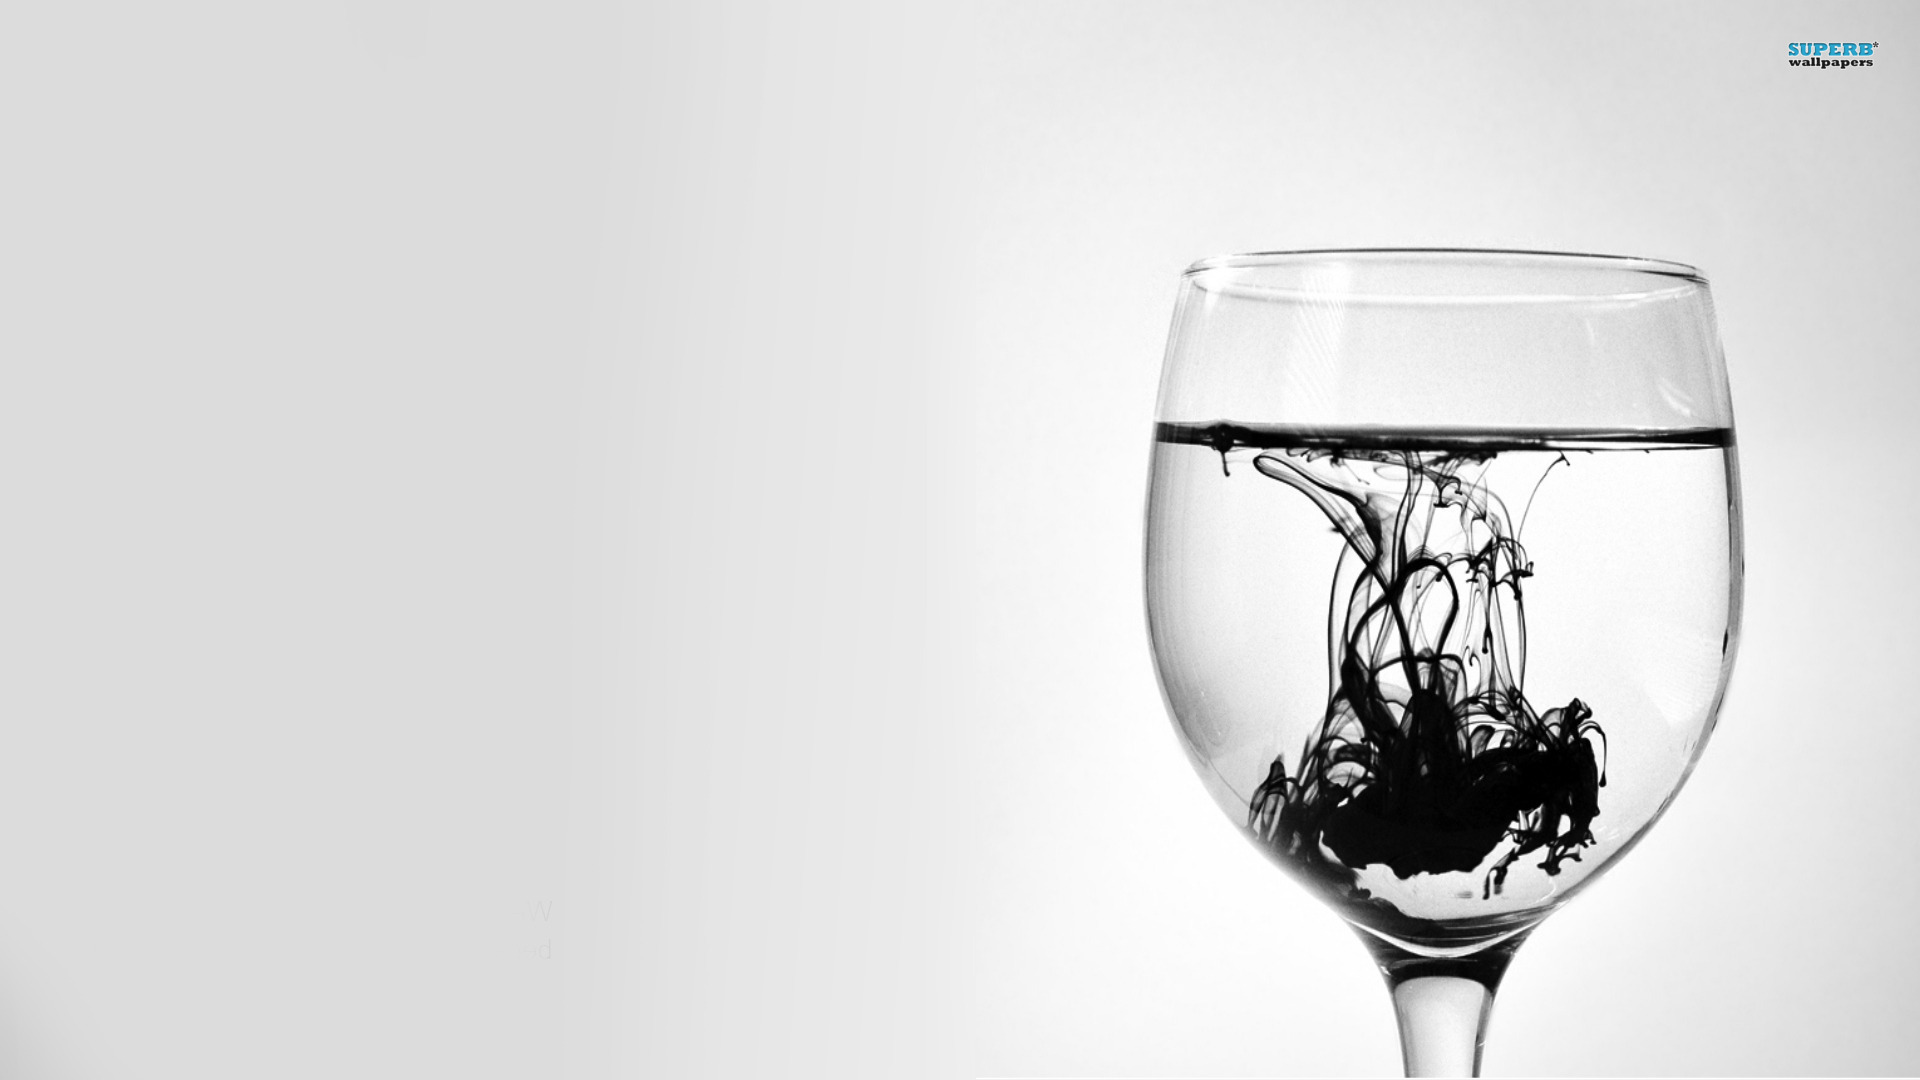 poison-in-a-glass-of-water-15104-1920x1080